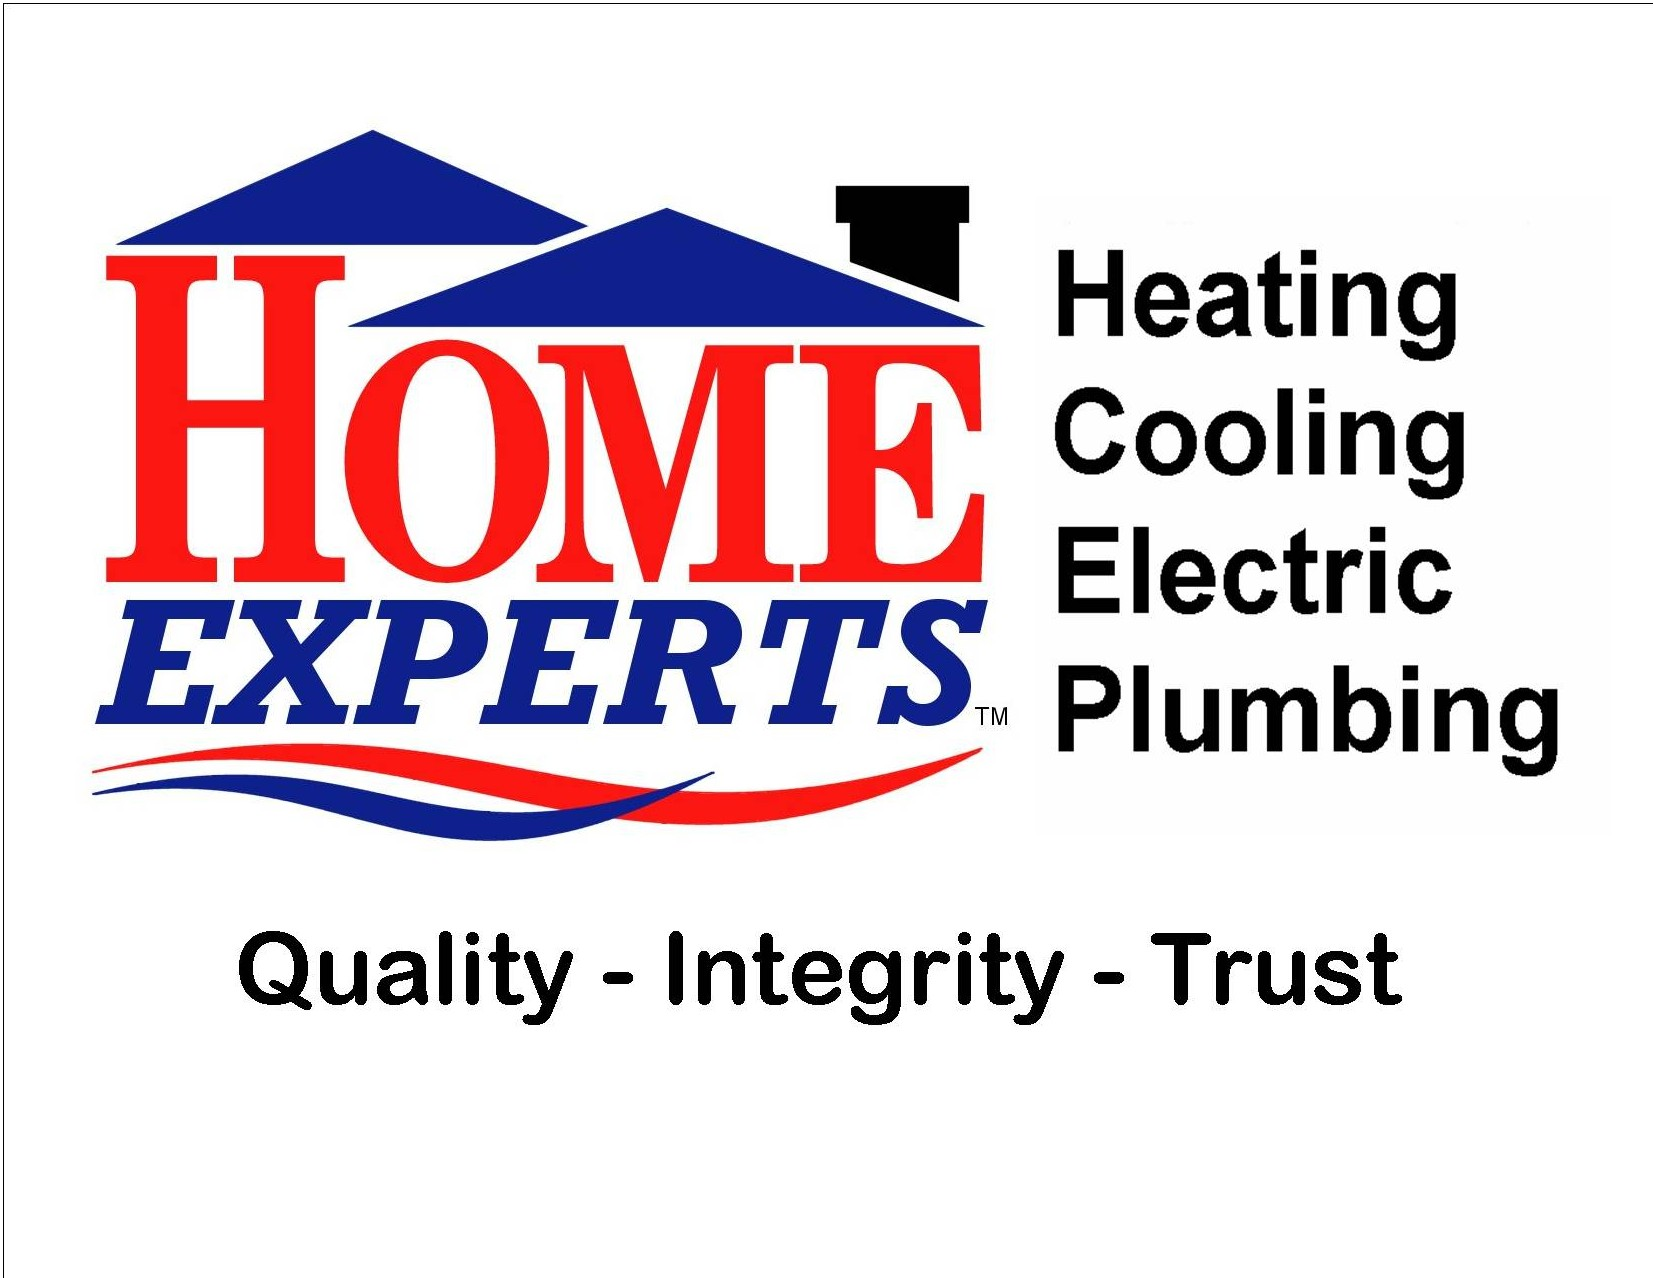 Home Experts Heating, Cooling & Plumbing 27 Beardsley Rd. Ionia, MI 48846 - Phone: (800) 457-4554